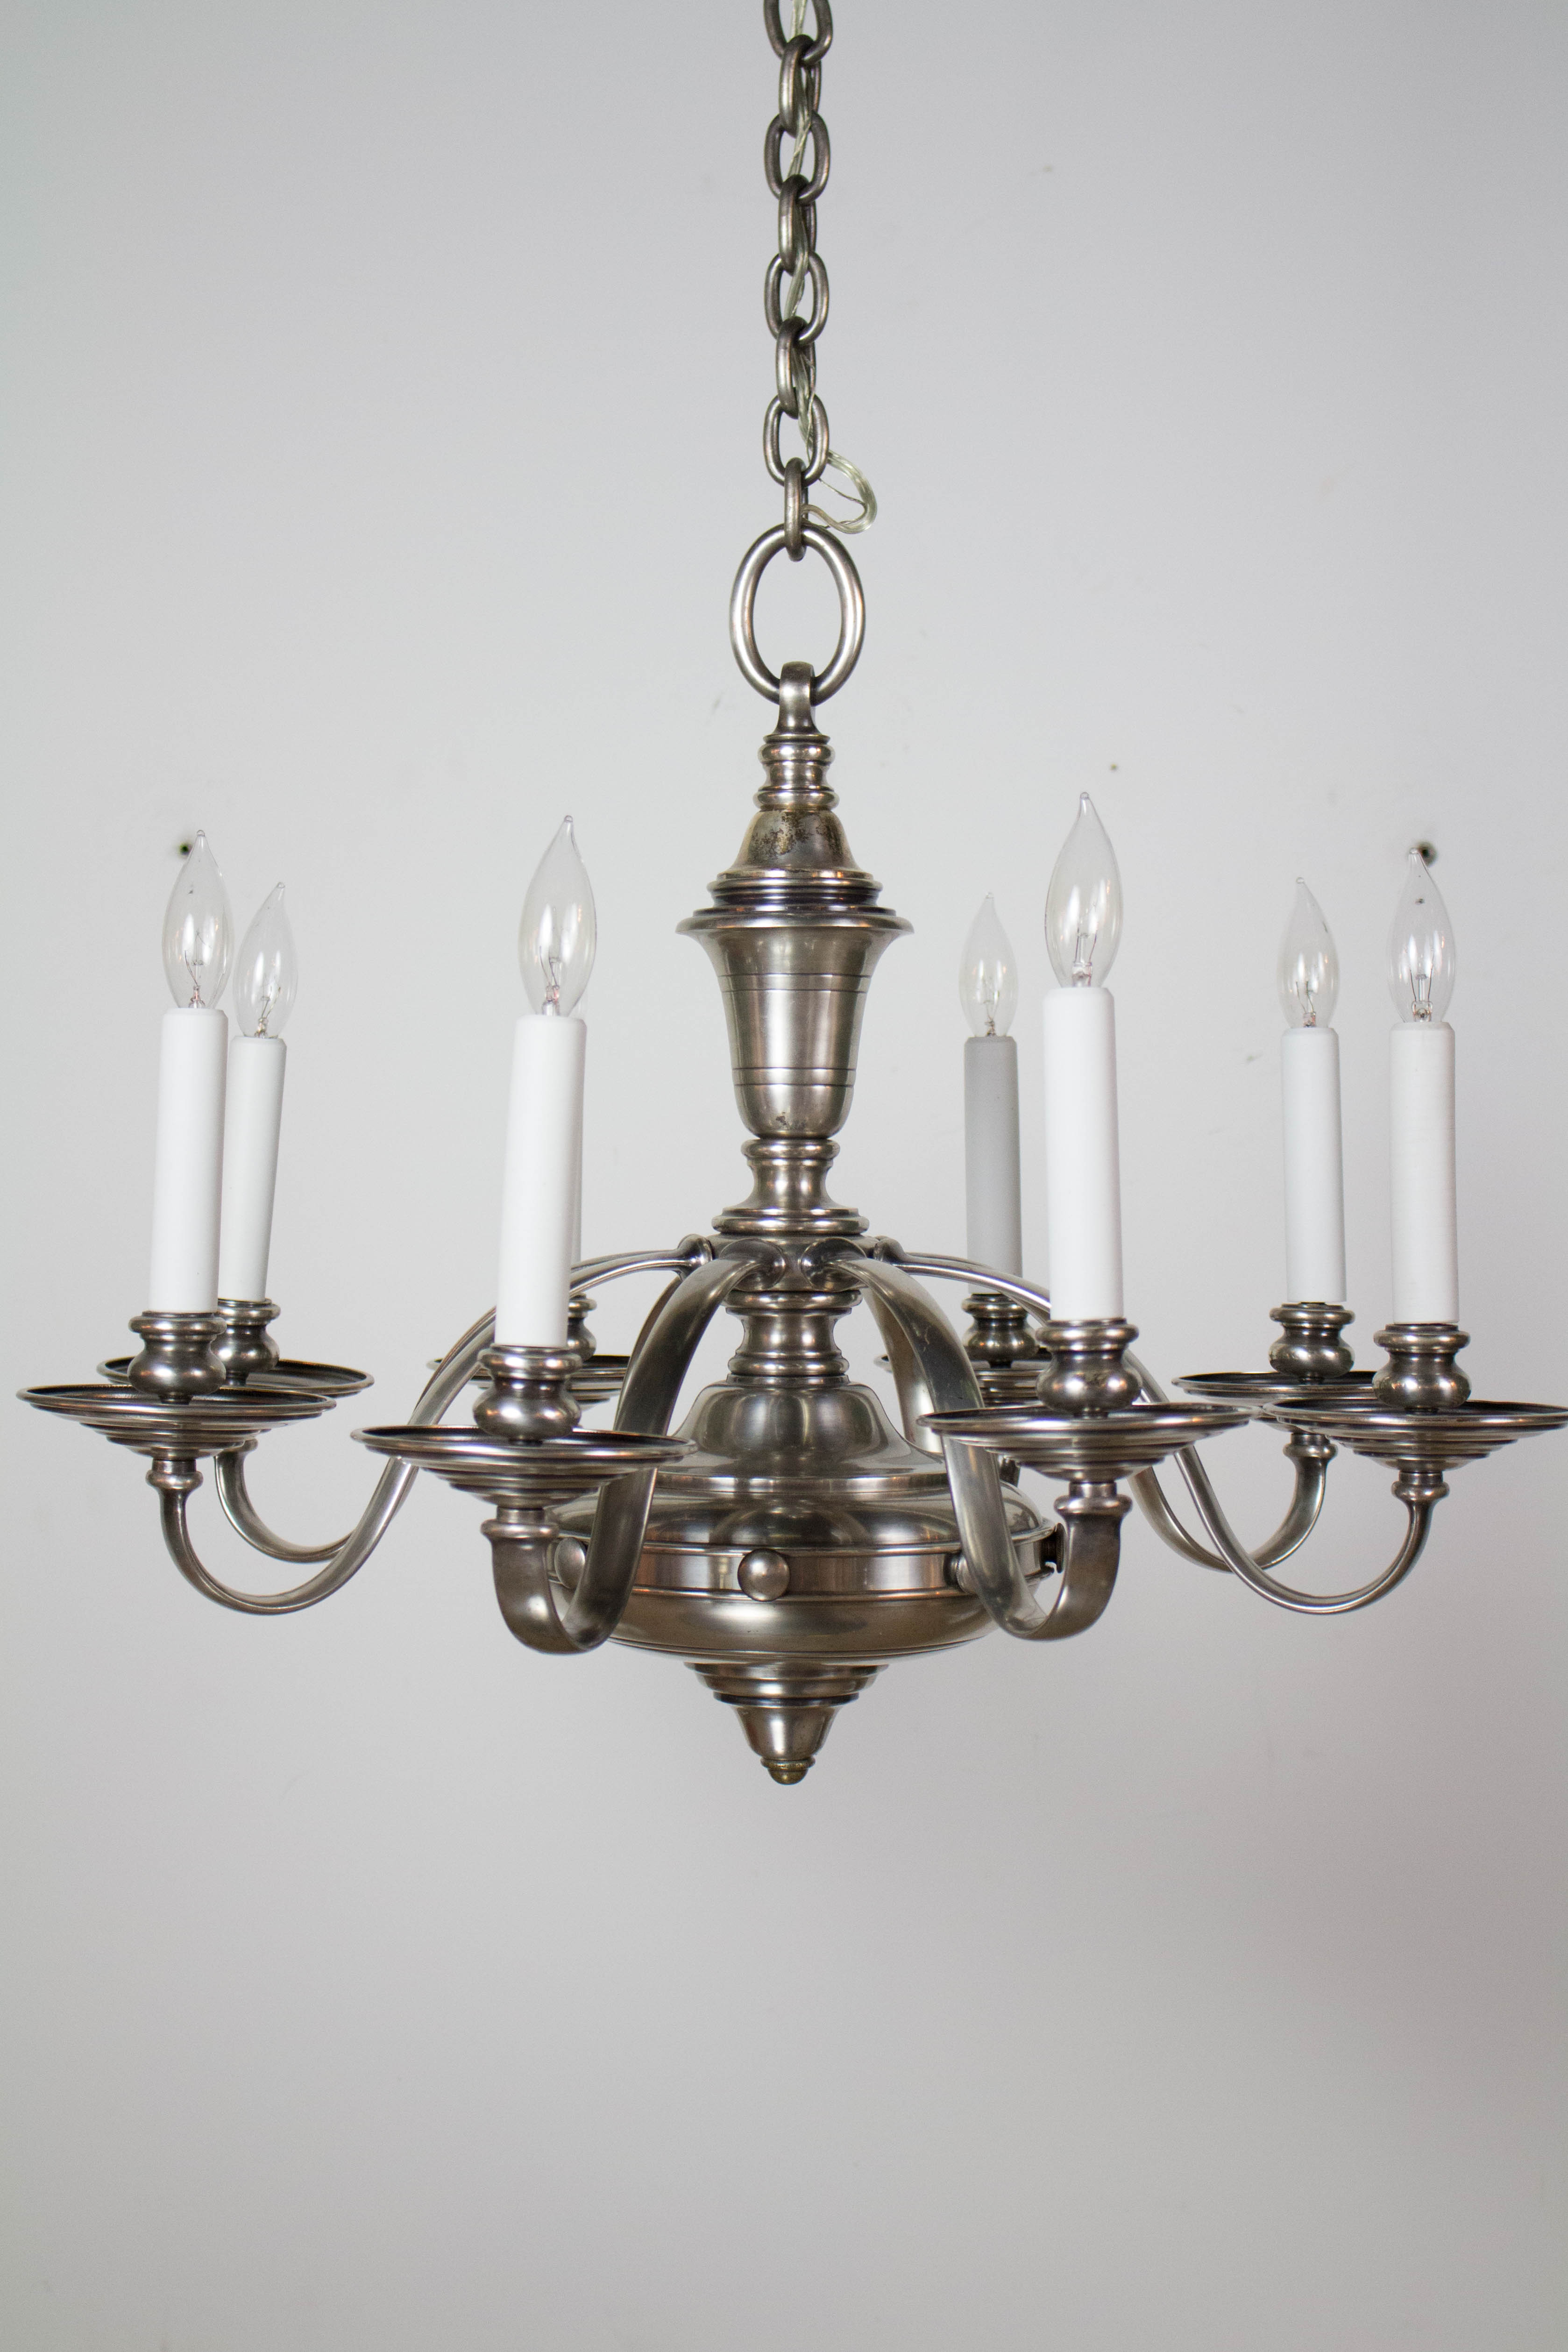 Eight Arm Chandelier With Pewter Finish